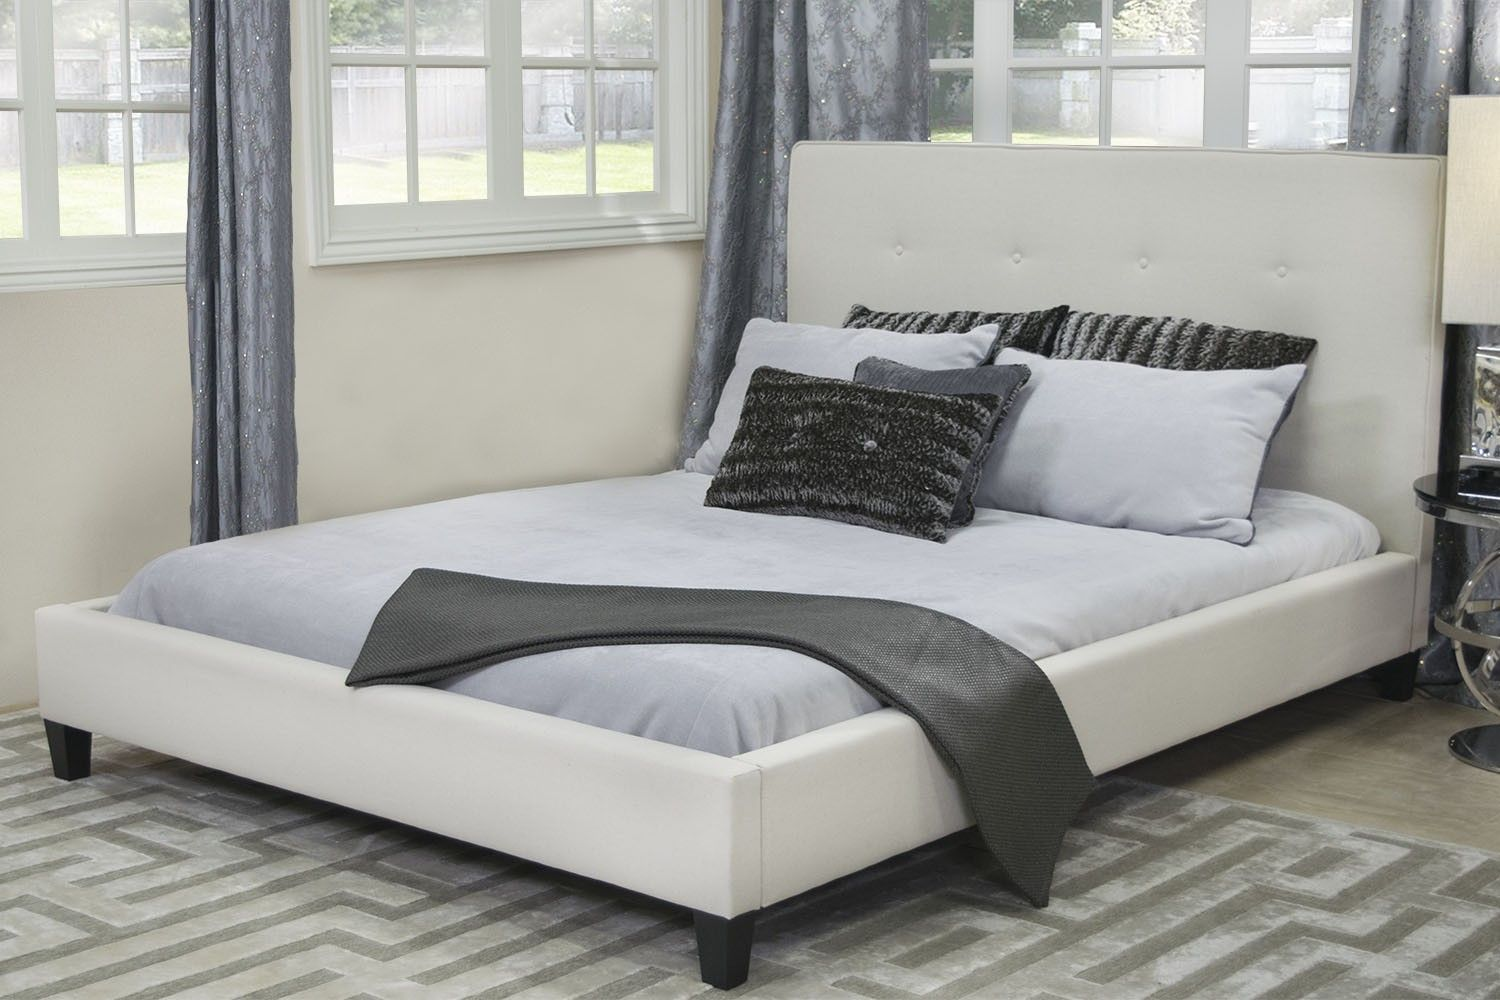 Best Mor Furniture For Less The Mid Century Modern Queen Bed 400 x 300